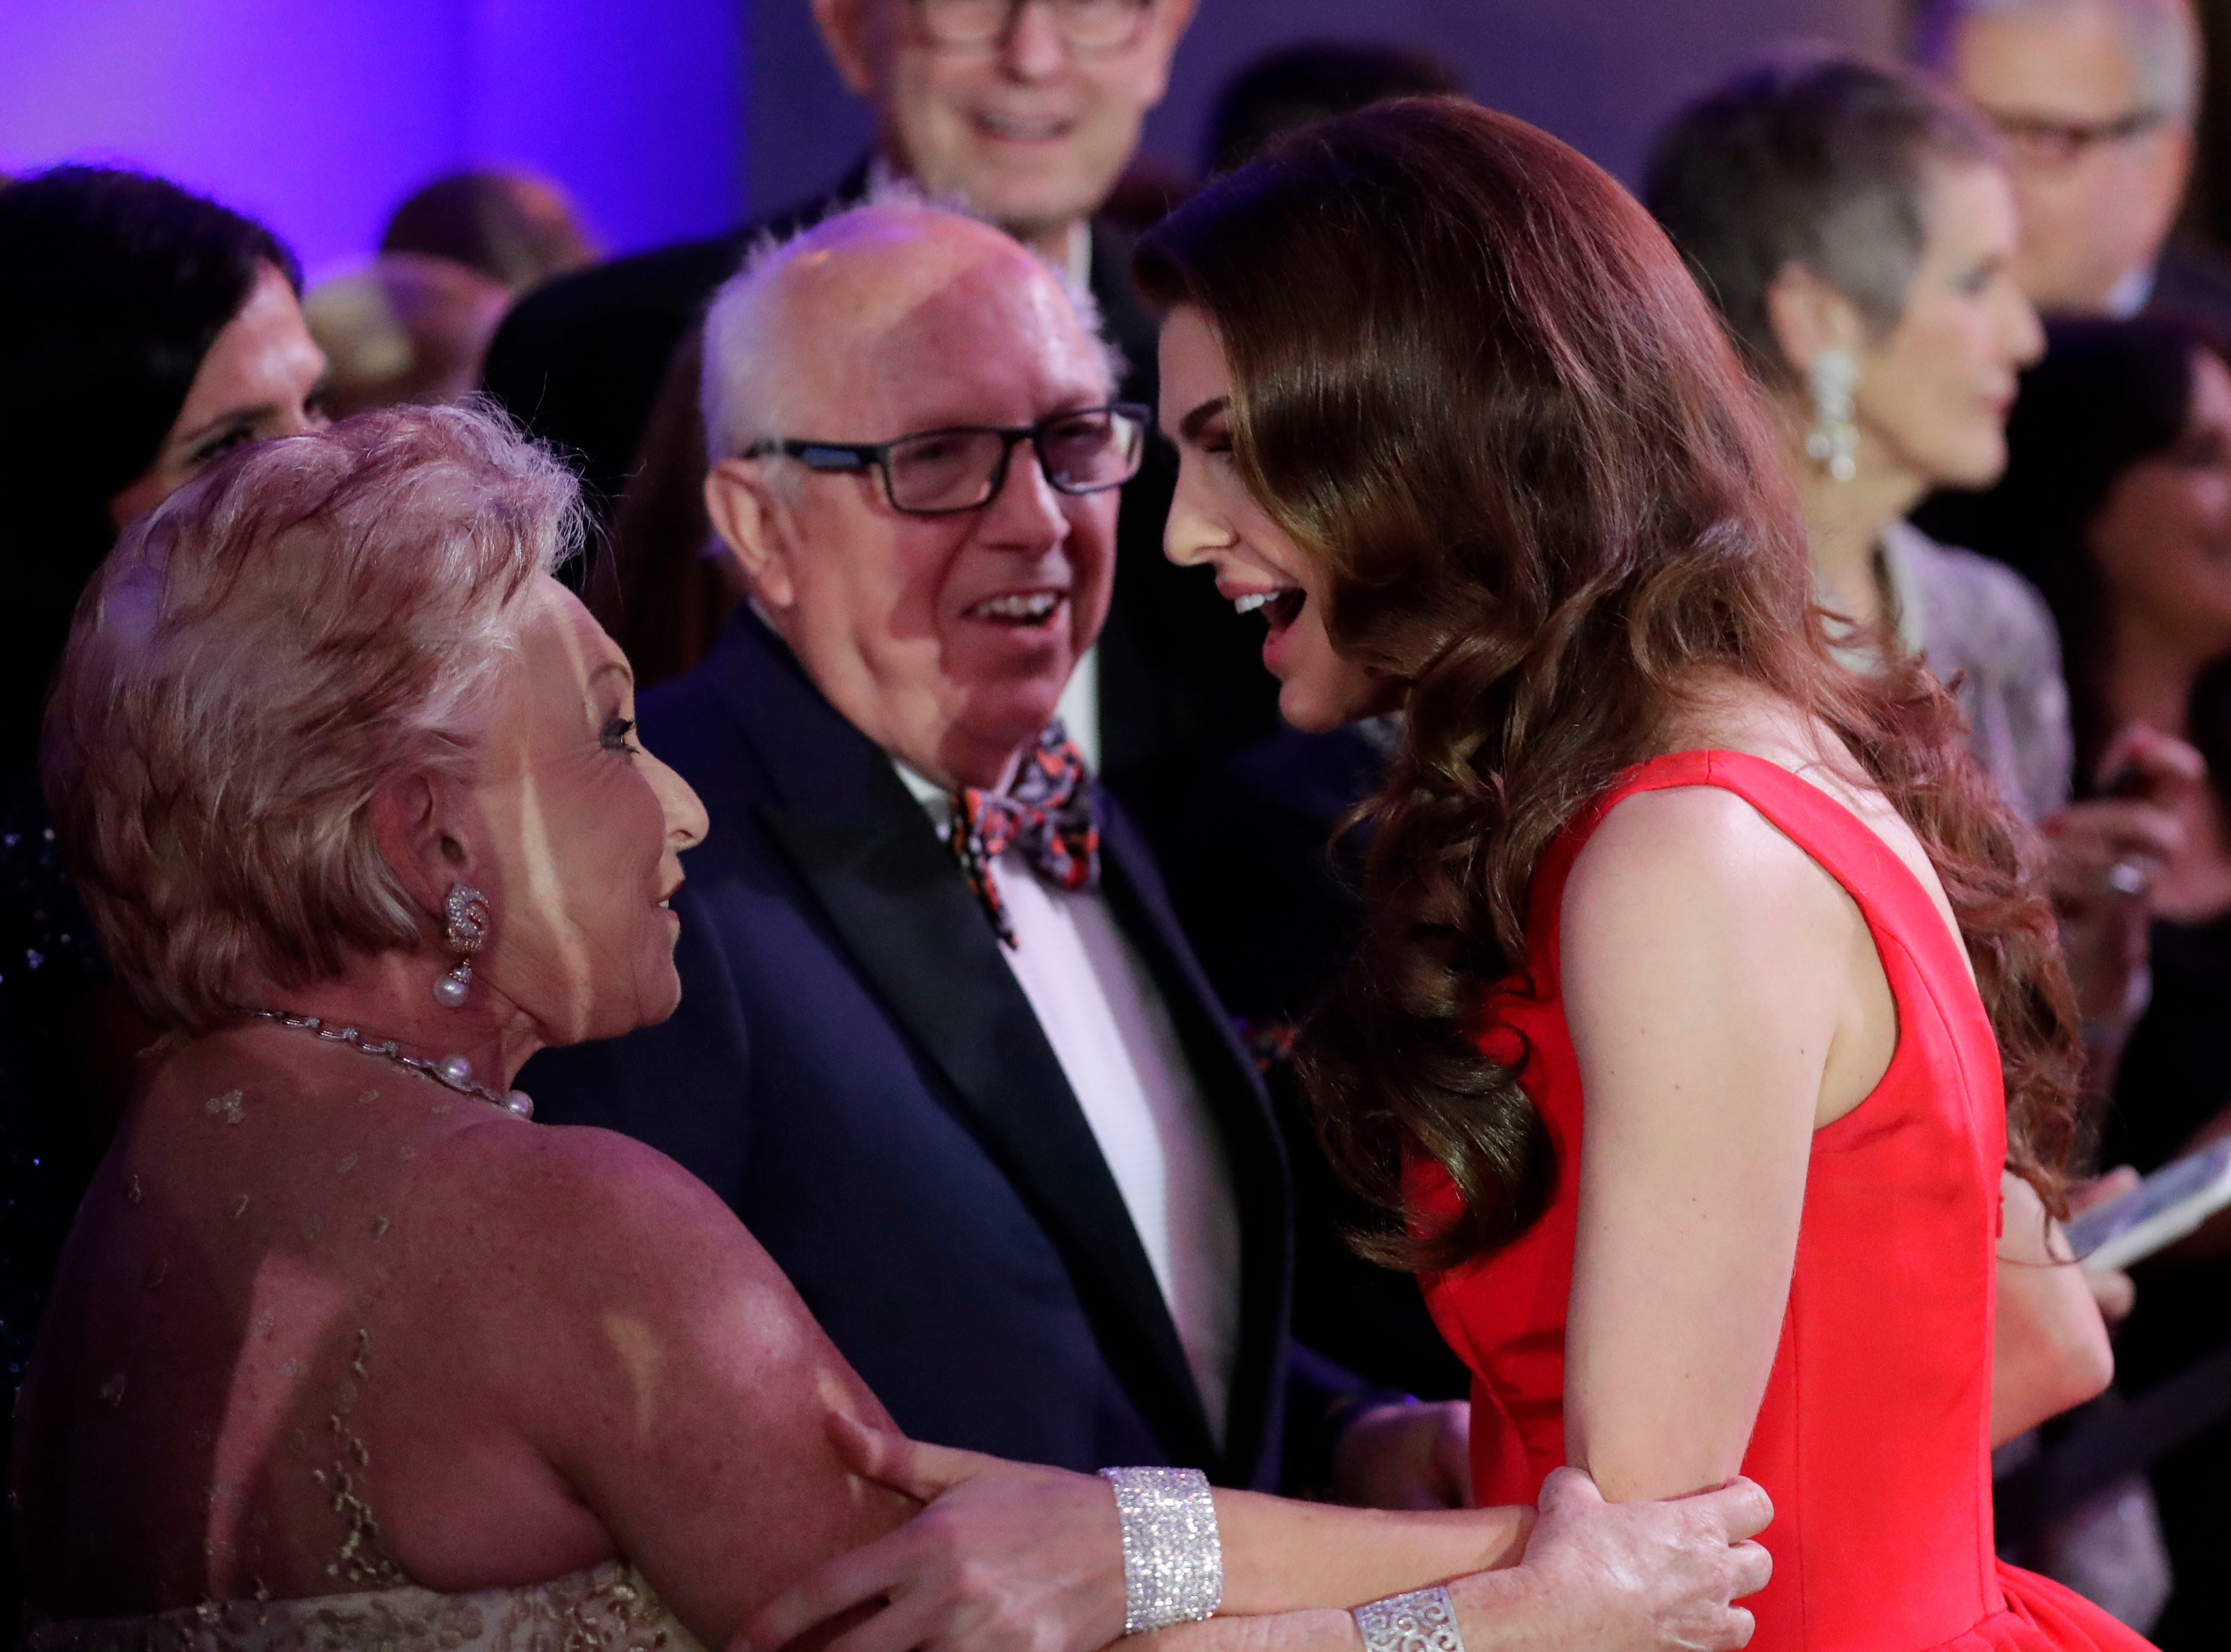 Hundreds of guests from all over Florida attend Florida's 46th Governor's Inaugural Ball at the Tucker Civic Center, Tuesday, Jan. 8, 2019. First lady Casey DeSantis mingles with guests.